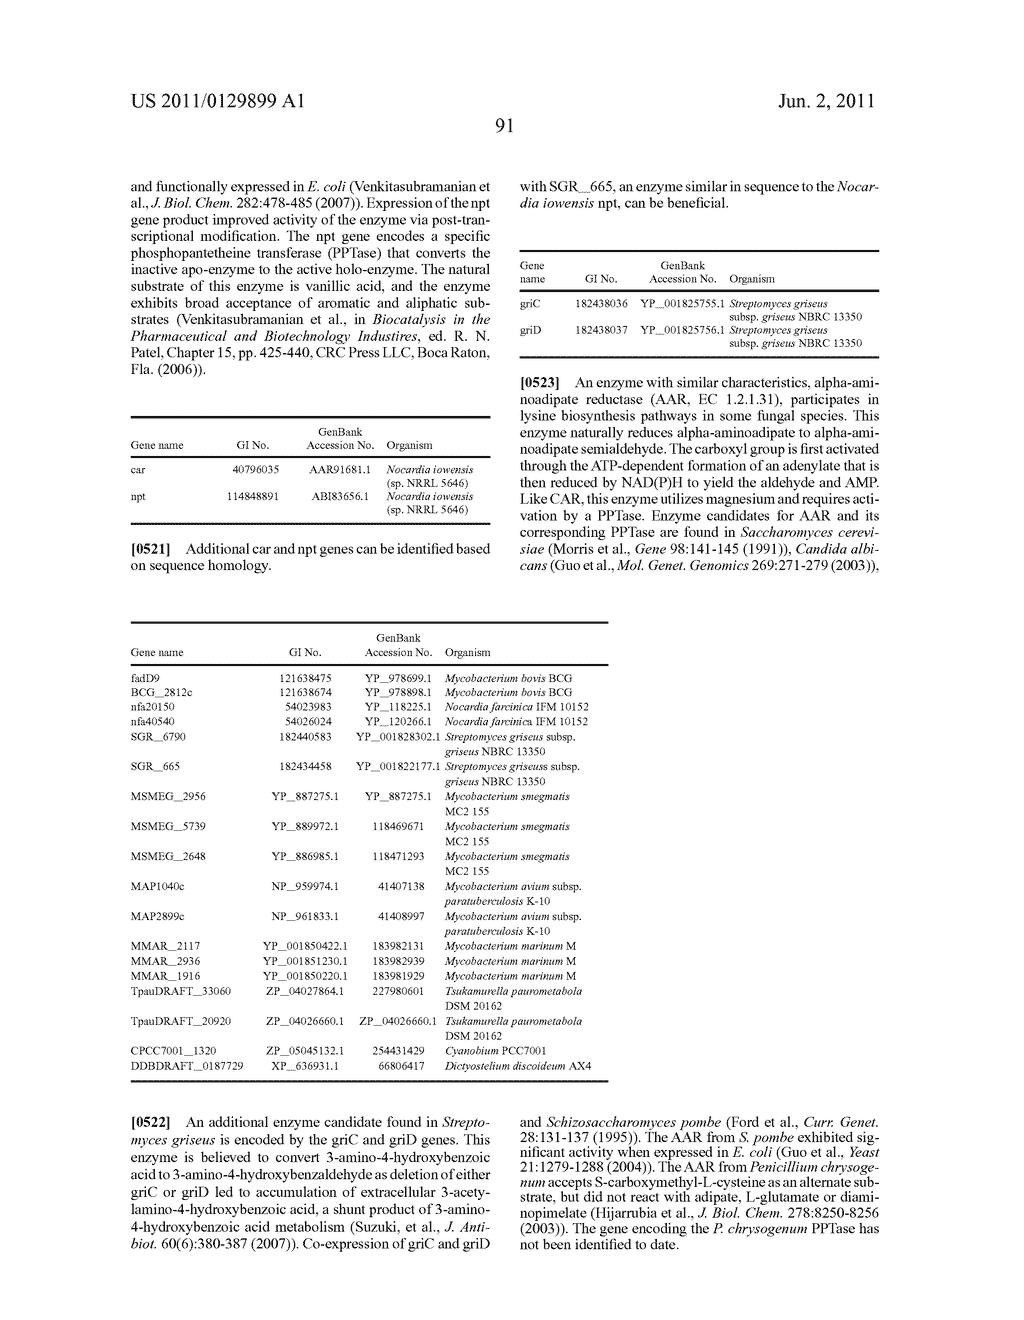 MICROORGANISMS FOR THE PRODUCTION OF 1,4-BUTANEDIOL, 4-HYDROXYBUTANAL,     4-HYDROXYBUTYRYL-COA, PUTRESCINE AND RELATED COMPOUNDS, AND METHODS     RELATED THERETO - diagram, schematic, and image 160